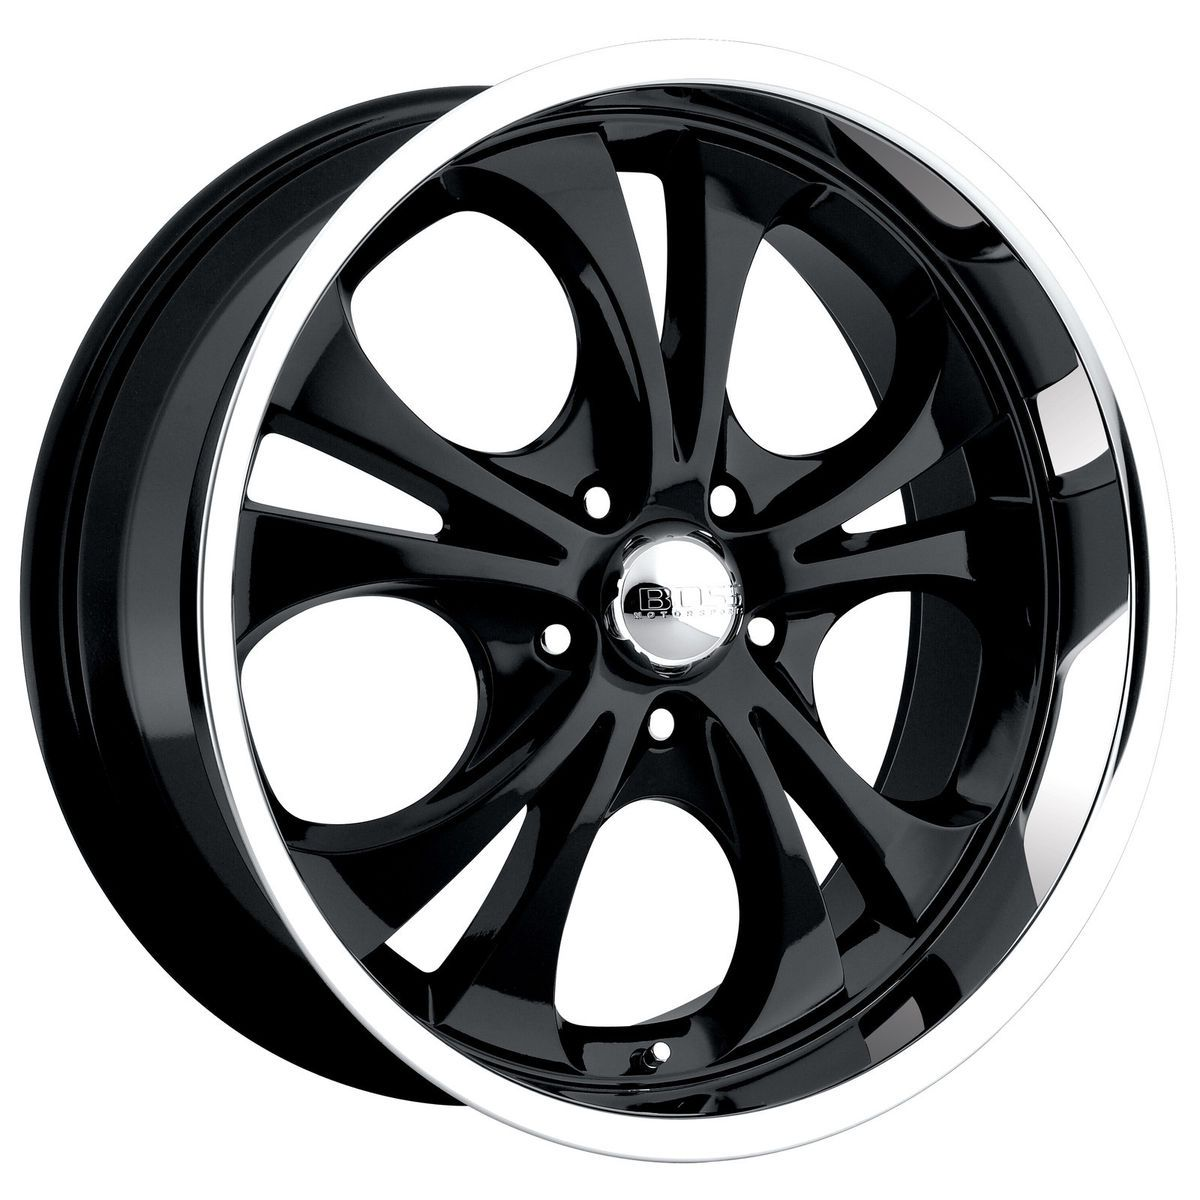 CPP Boss 304 Wheels Rims 20x8 5 fits SILVERADO SIERRA TAHOE ESCALADE